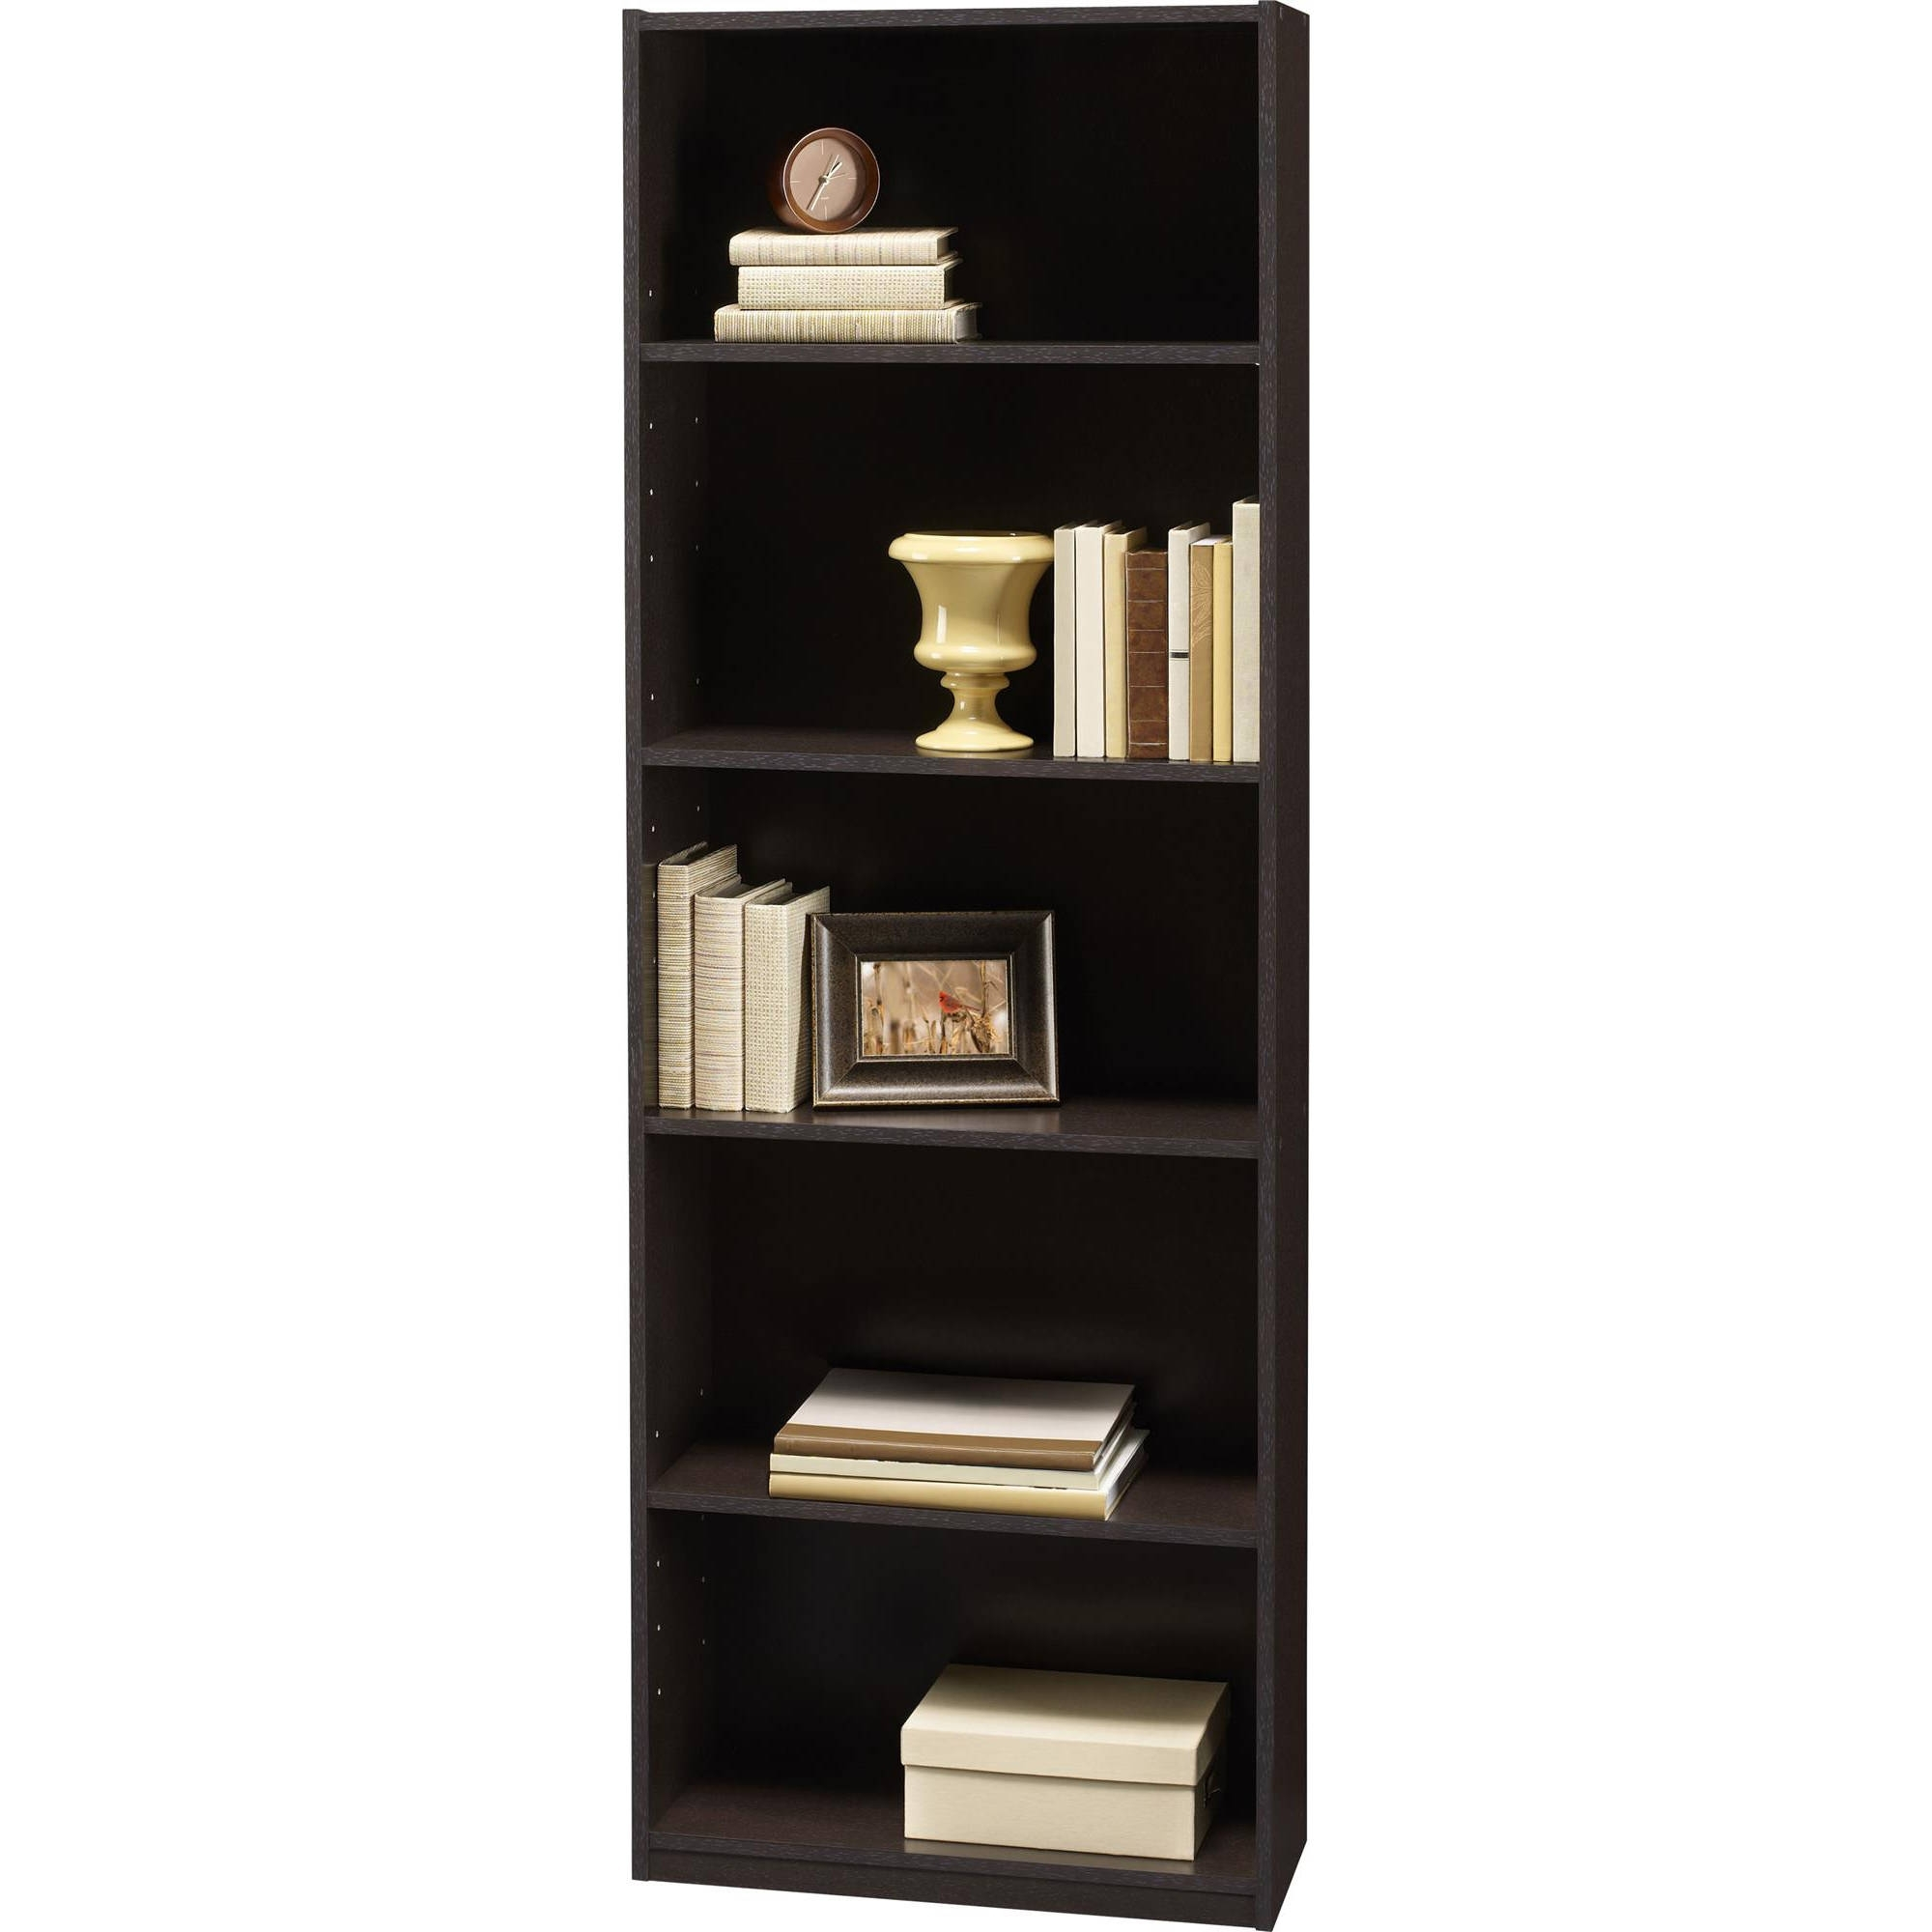 Ameriwood 3 Shelf And 5 Shelf Bookcases (Mix And Match) – Walmart Pertaining To Most Popular Black Bookcases Walmart (View 2 of 15)